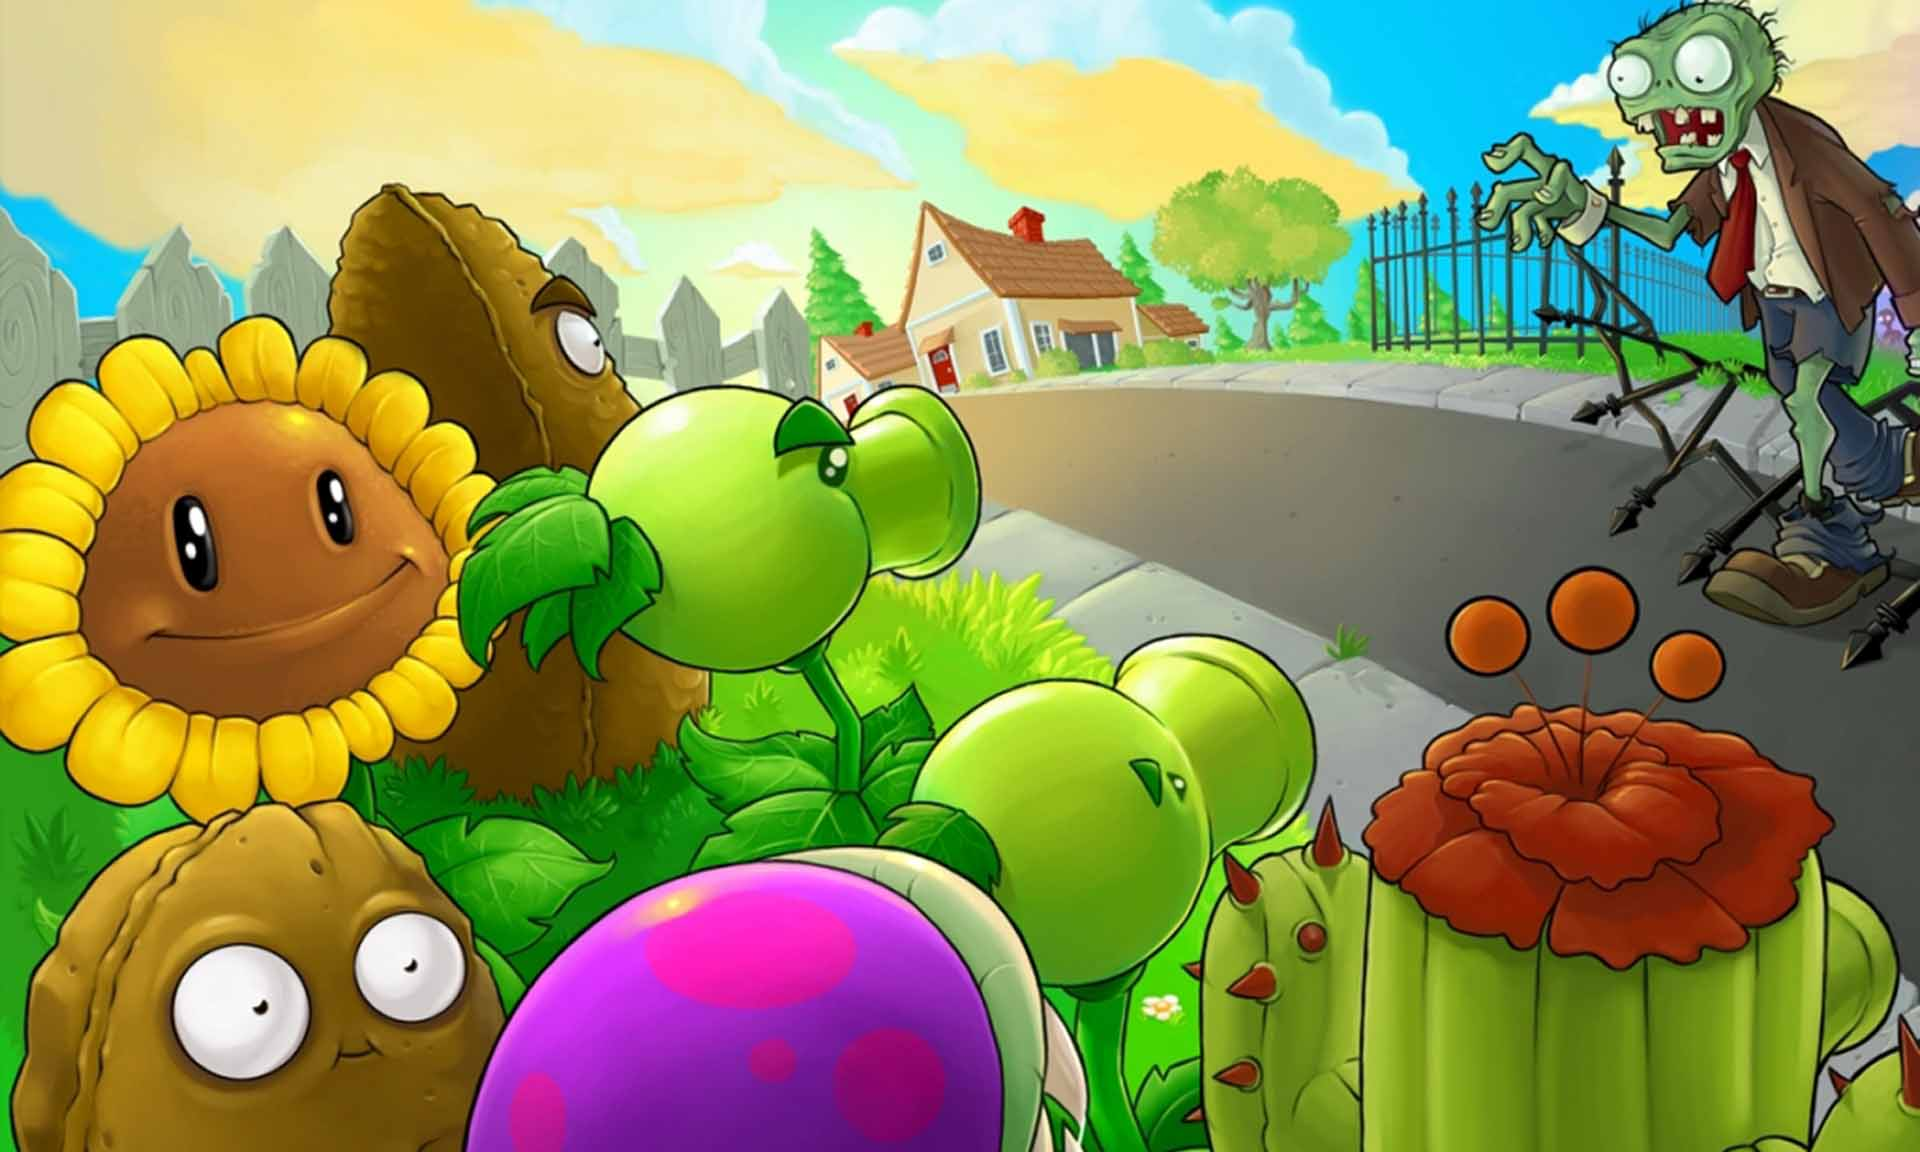 Plants_vs_zombies_background_image2